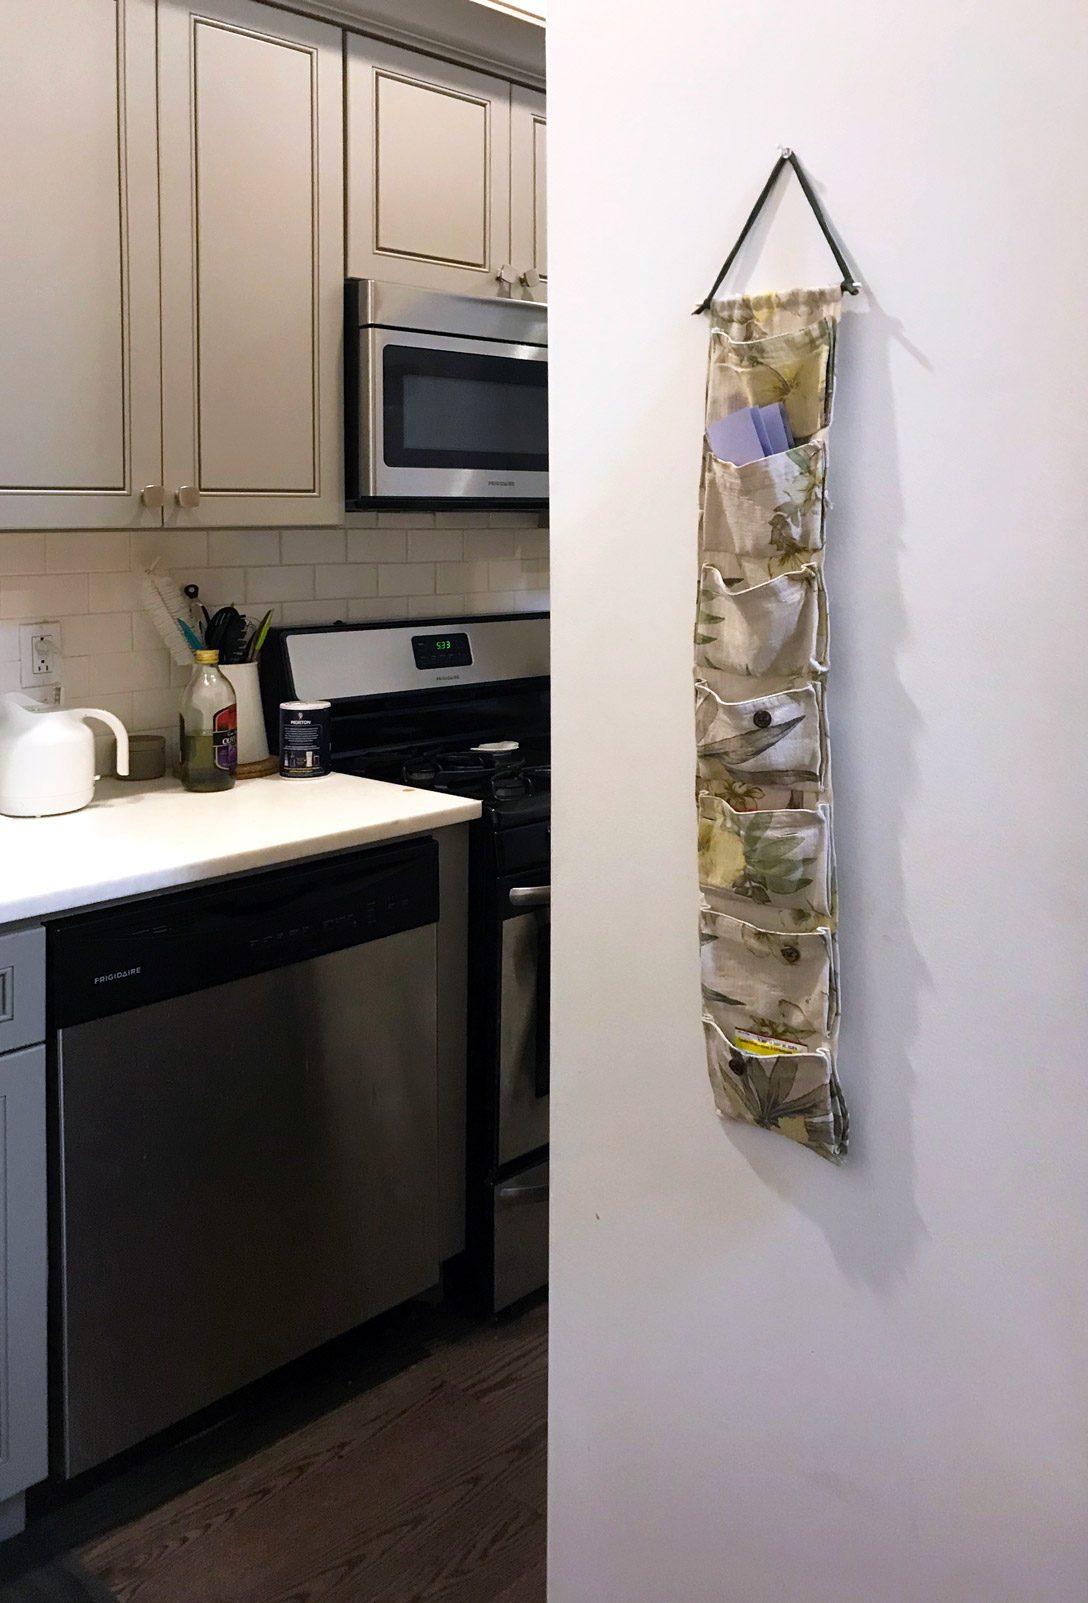 Fabricated activity kit by Pratt industrial design student Jae Wendell hanging on kitchen wall